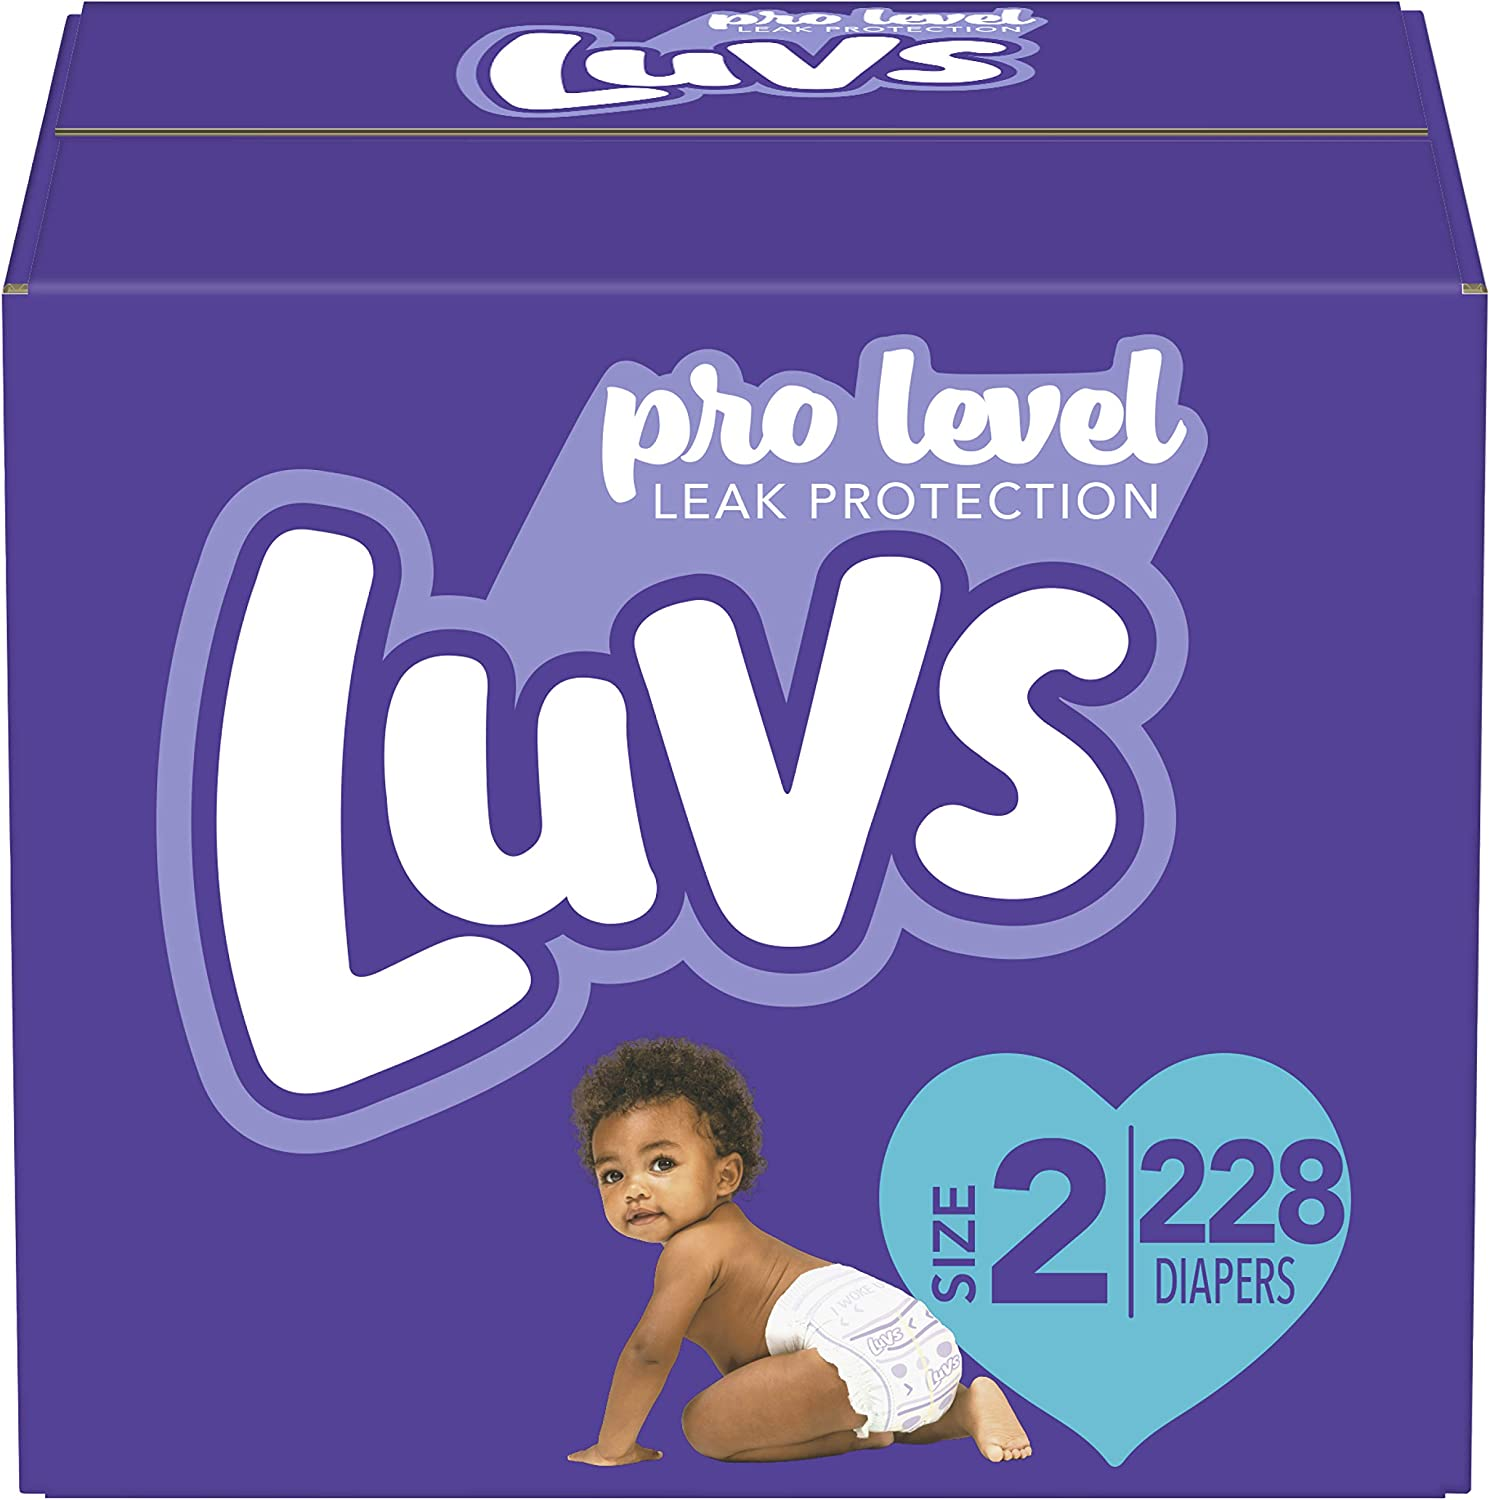 Amazon Com Diapers Size 2 228 Count Luvs Ultra Leakguards Disposable Baby Diapers One Month Supply Health Personal Care